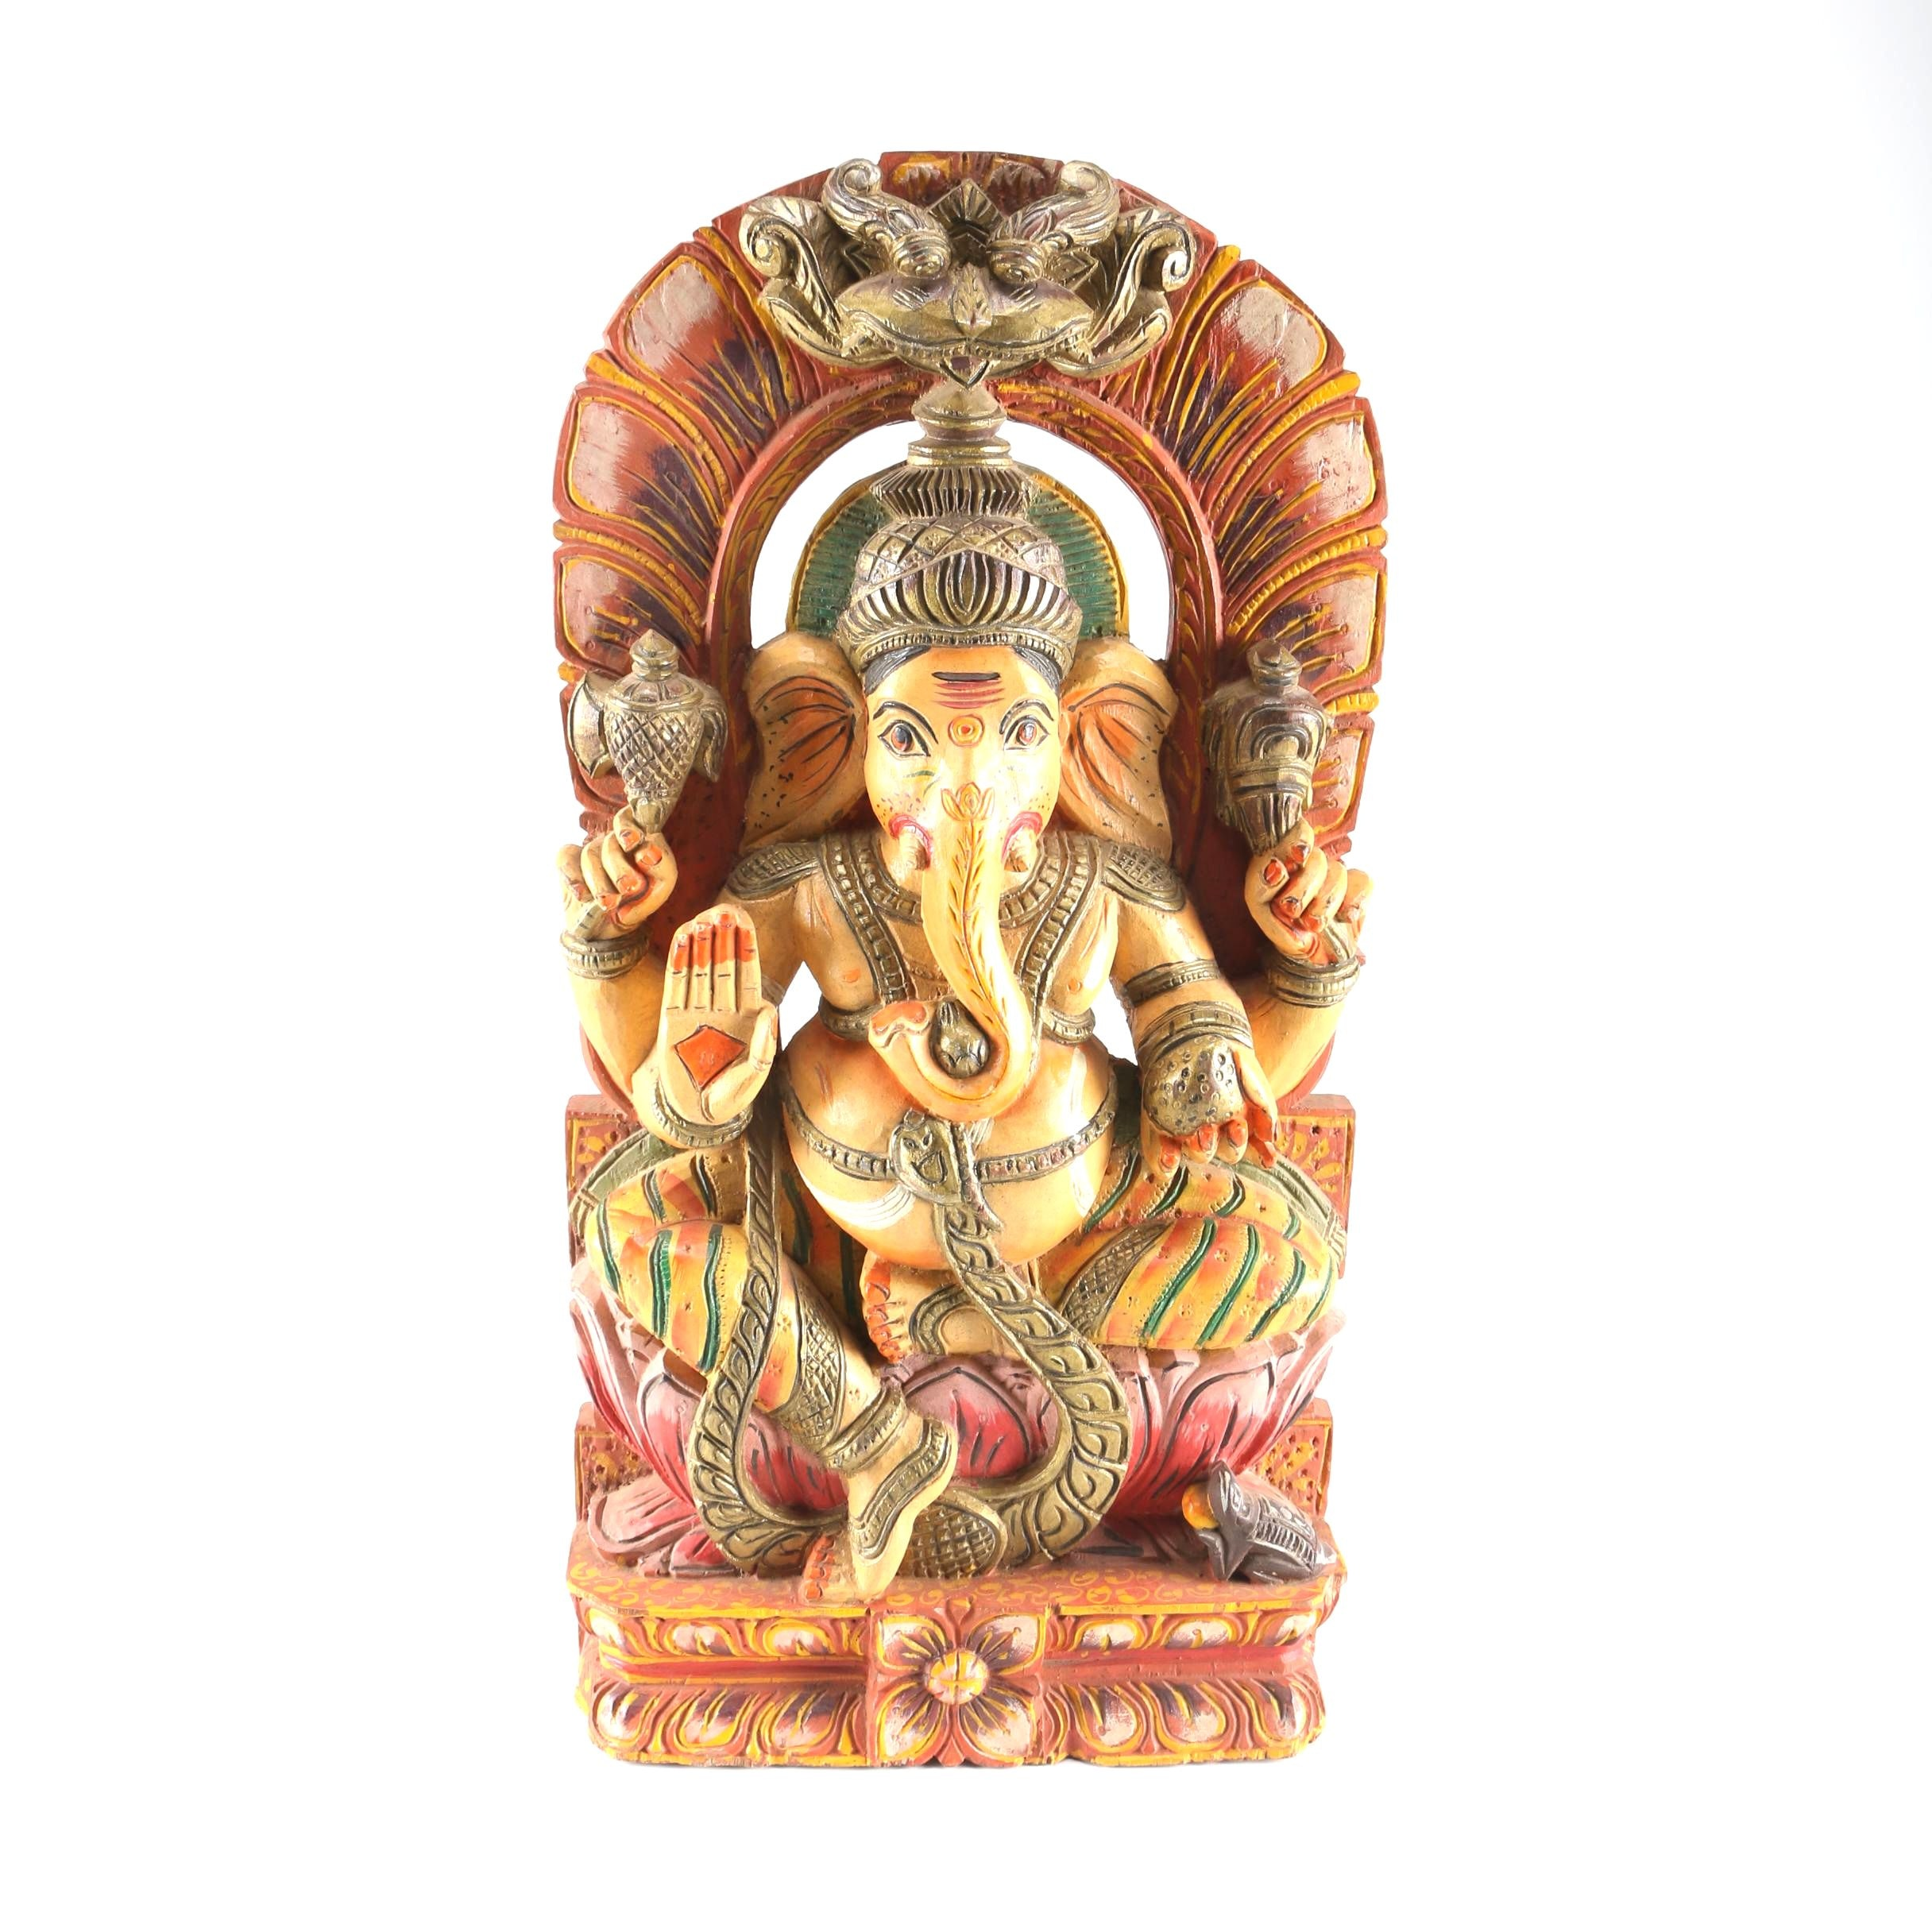 Wood Carving of Hindu Deity Ganesha